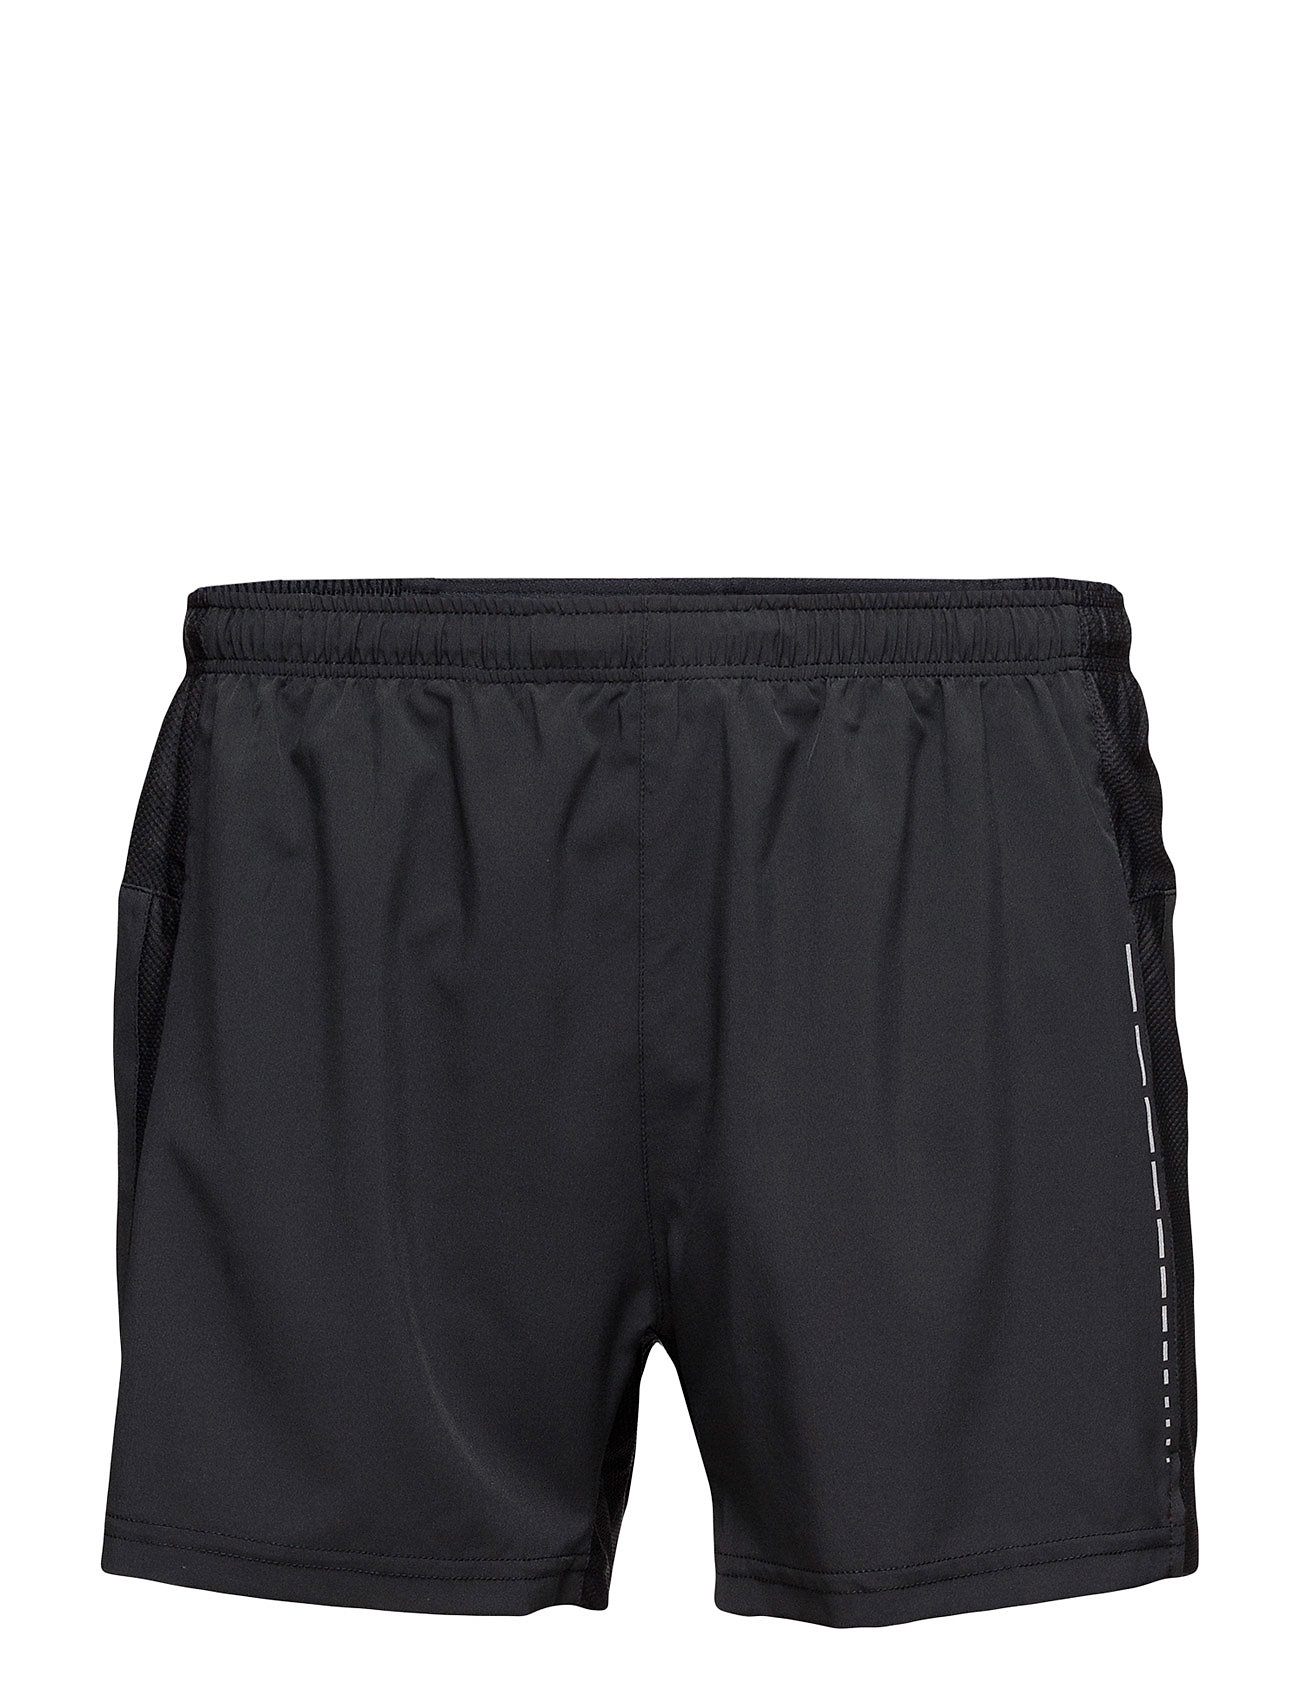 "Craft ESSENTIAL 5"" SHORTS  - BLACK"